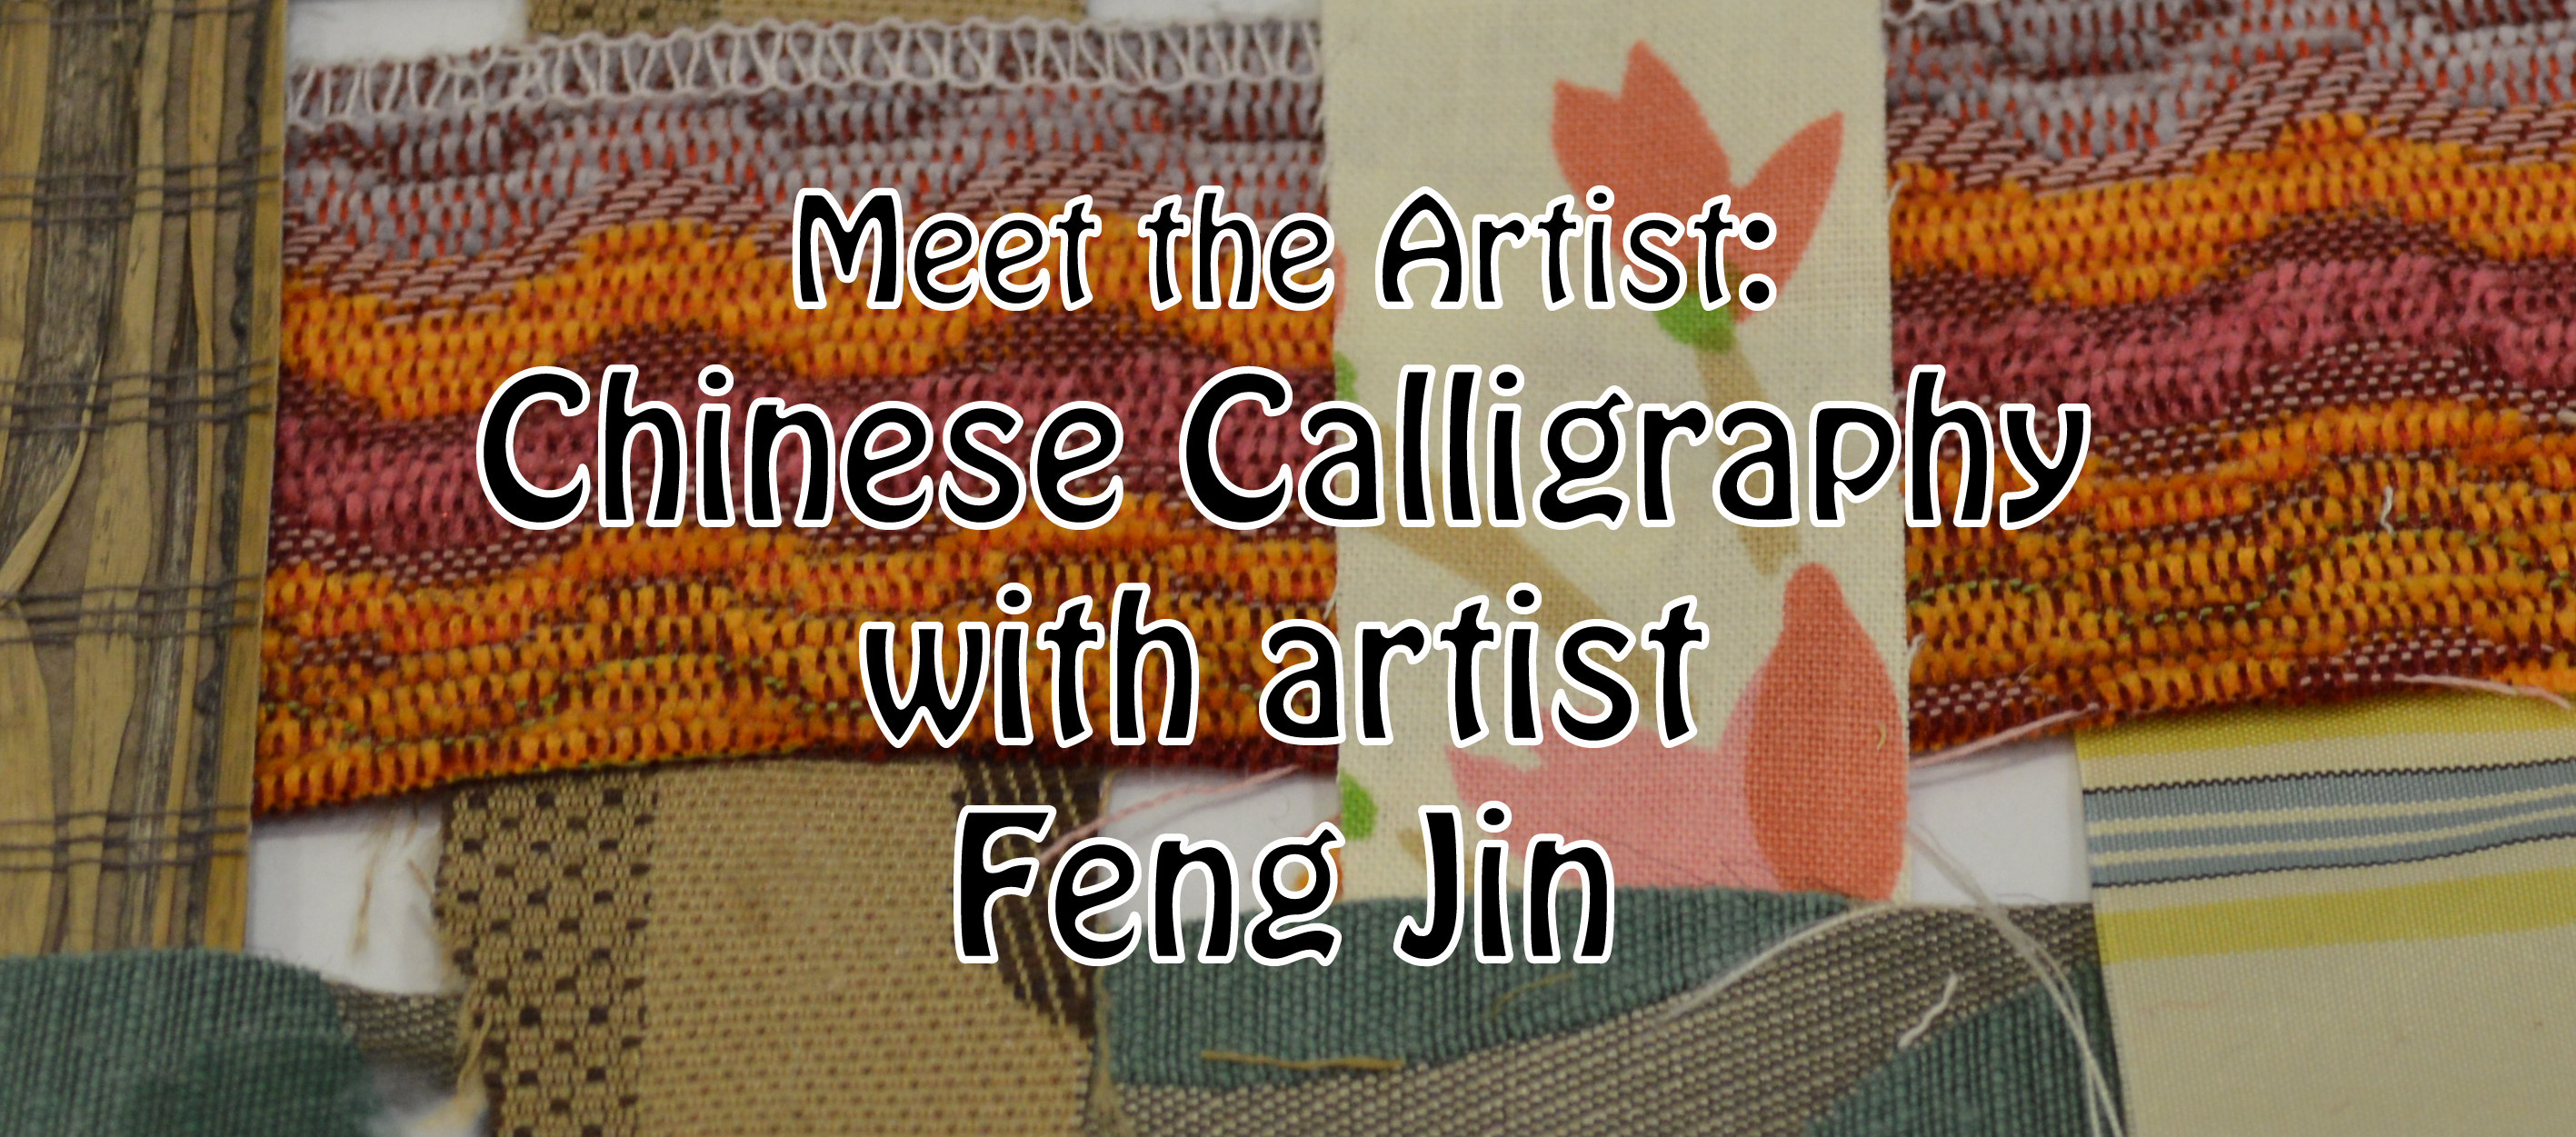 Meet the Artist: Chinese Calligraphy with artist Feng Jin